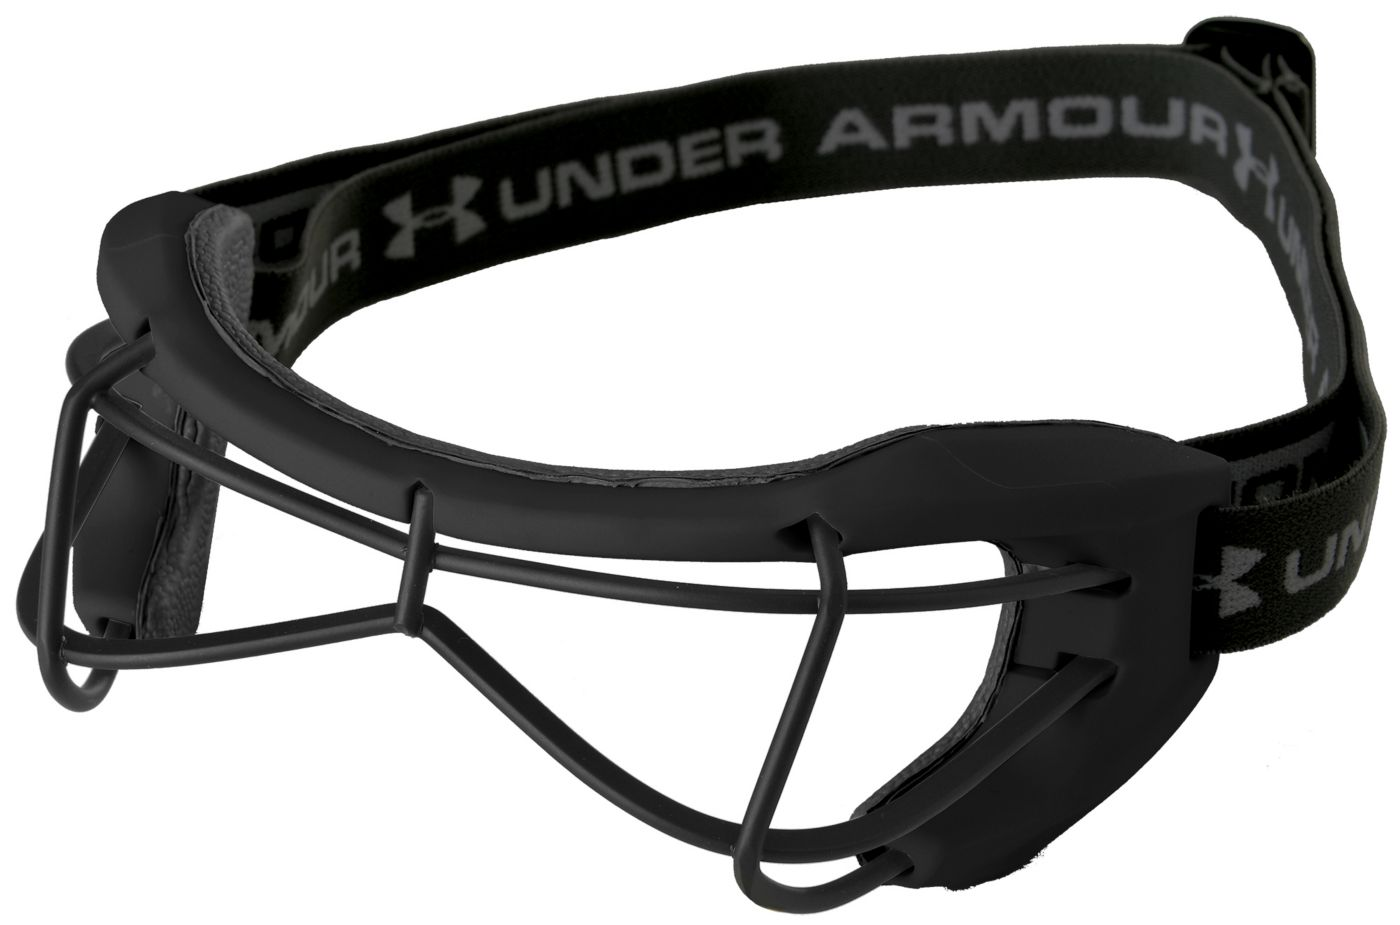 Under Armour Women's Futures Lacrosse/Field Hockey Goggles with Stainless Steel Mask